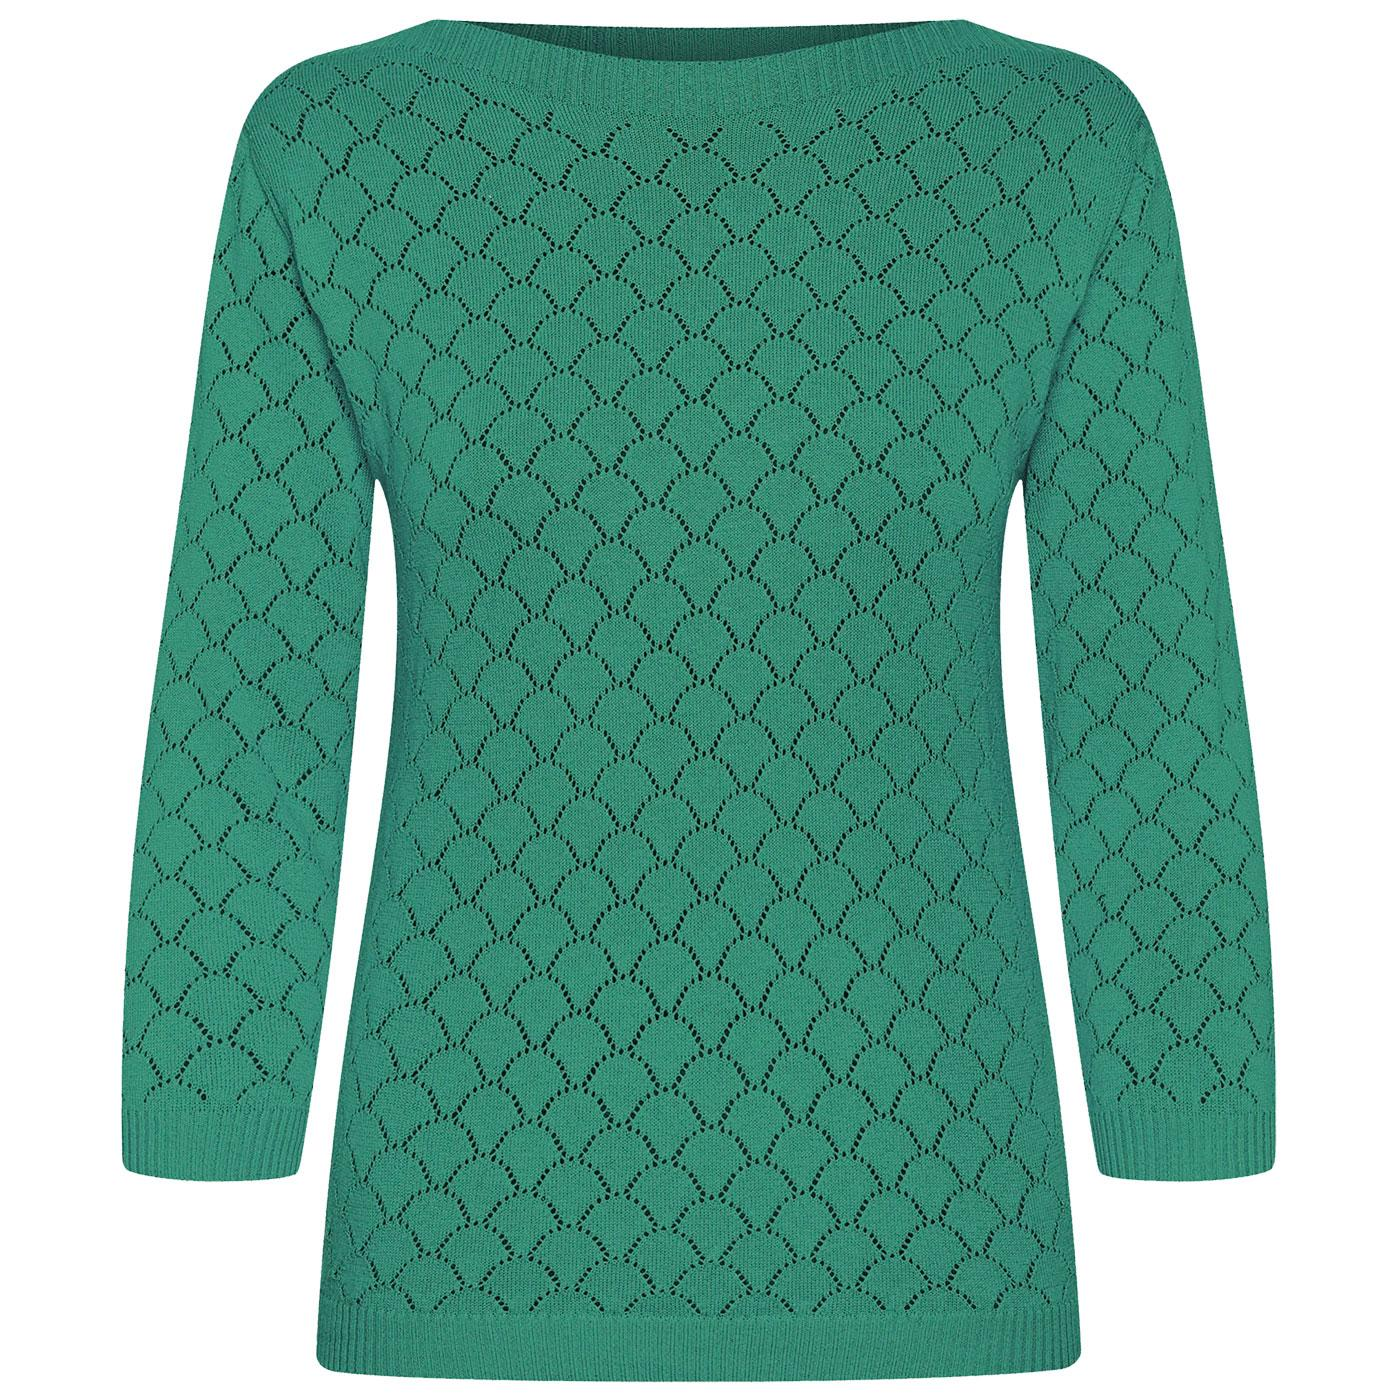 Staying Up MADEMOISELLE YEYE Retro 60s Knit Top G